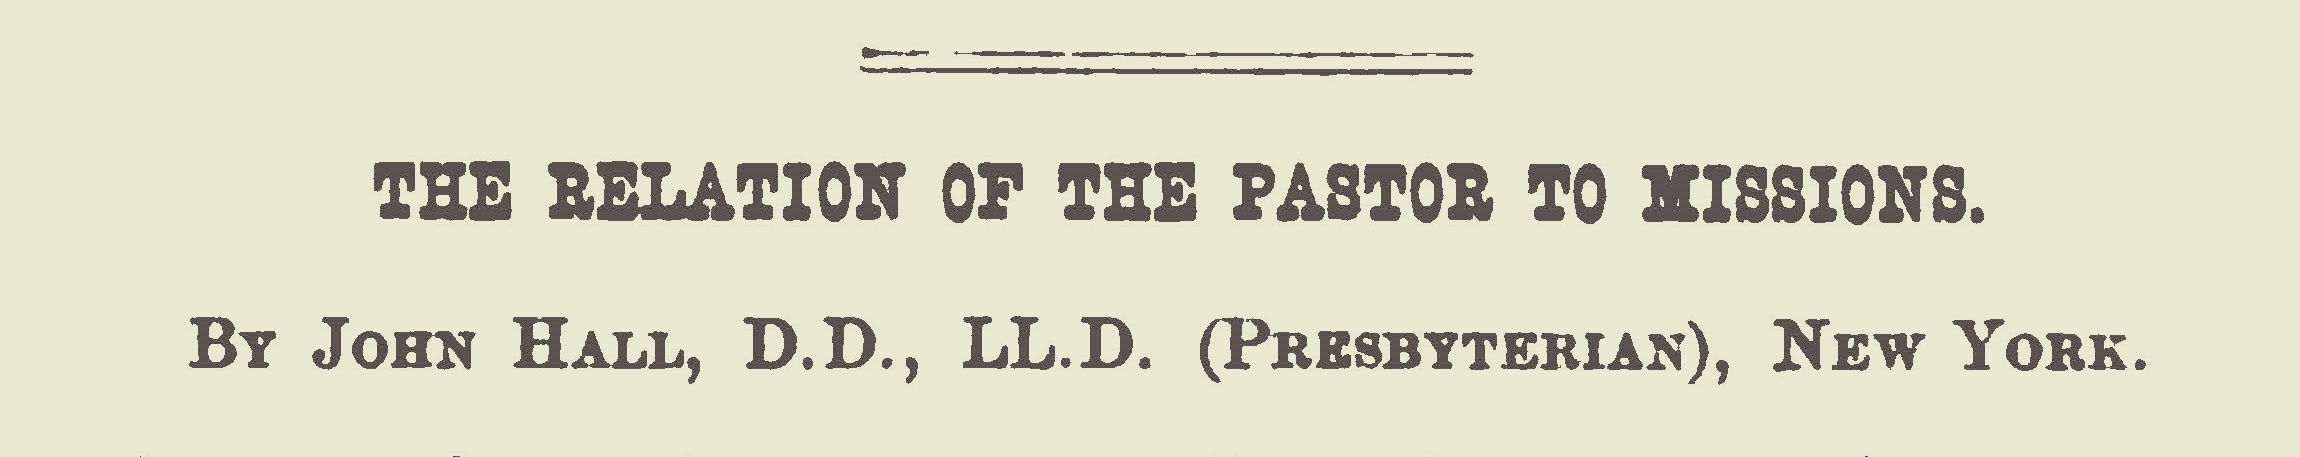 Hall, John, The Relation of the Pastor to Missions Title Page.jpg